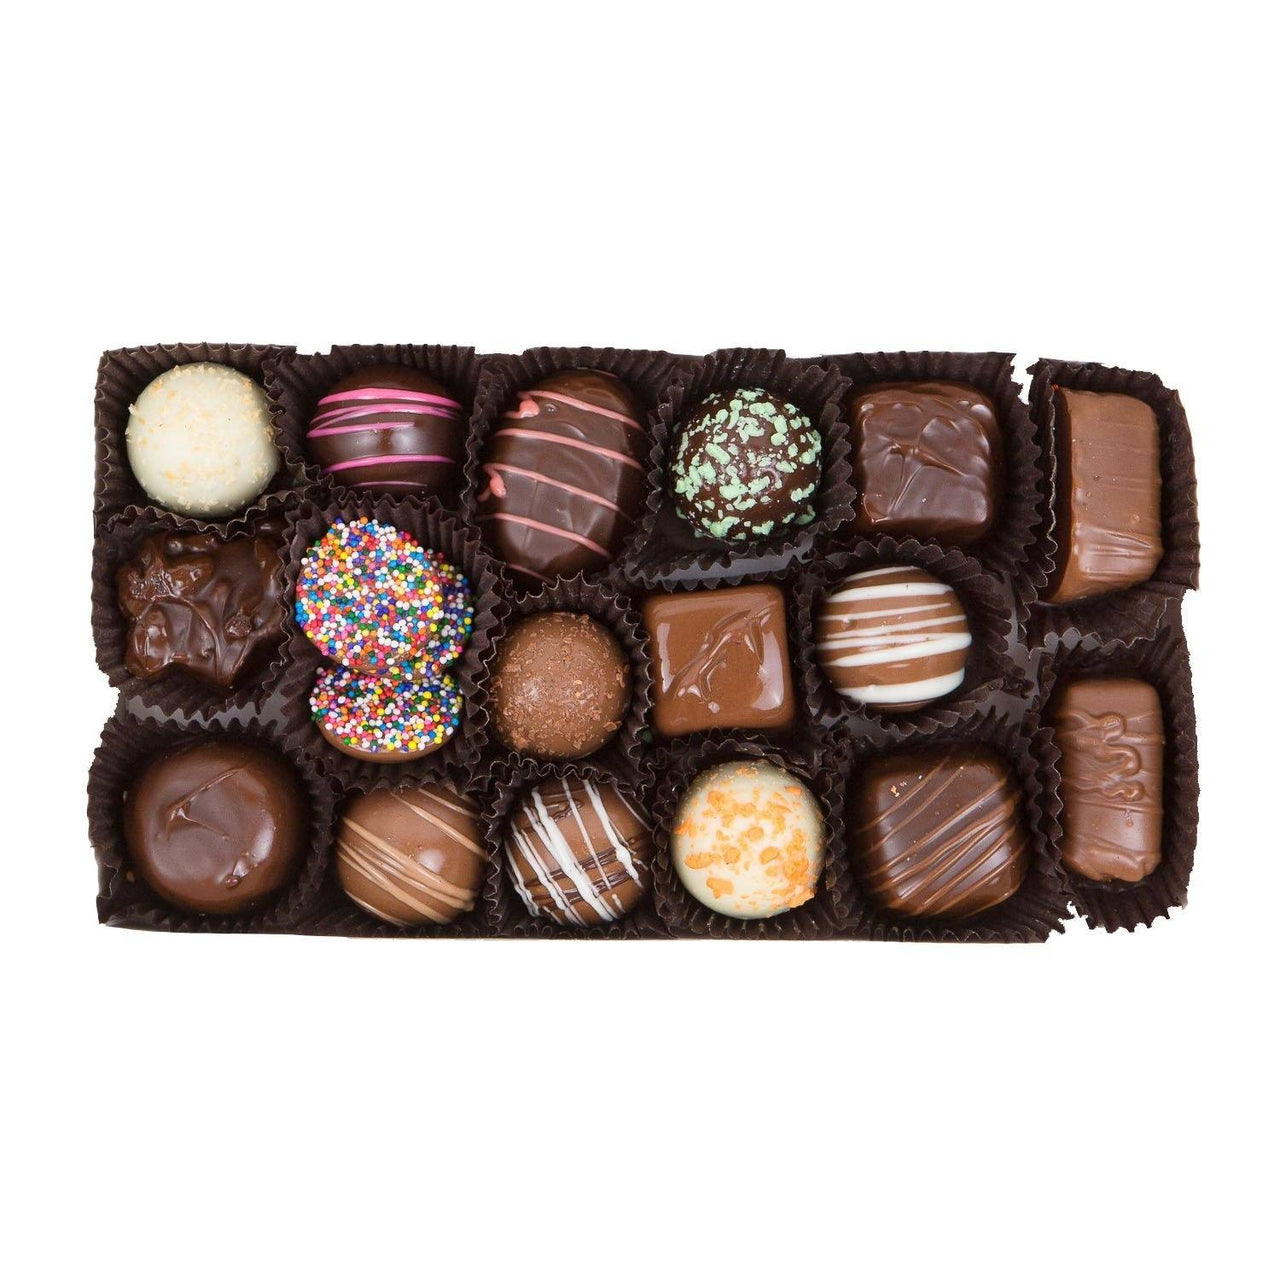 Family Gift Ideas - Chocolate Assortment Gift Box - Jackie's Chocolate